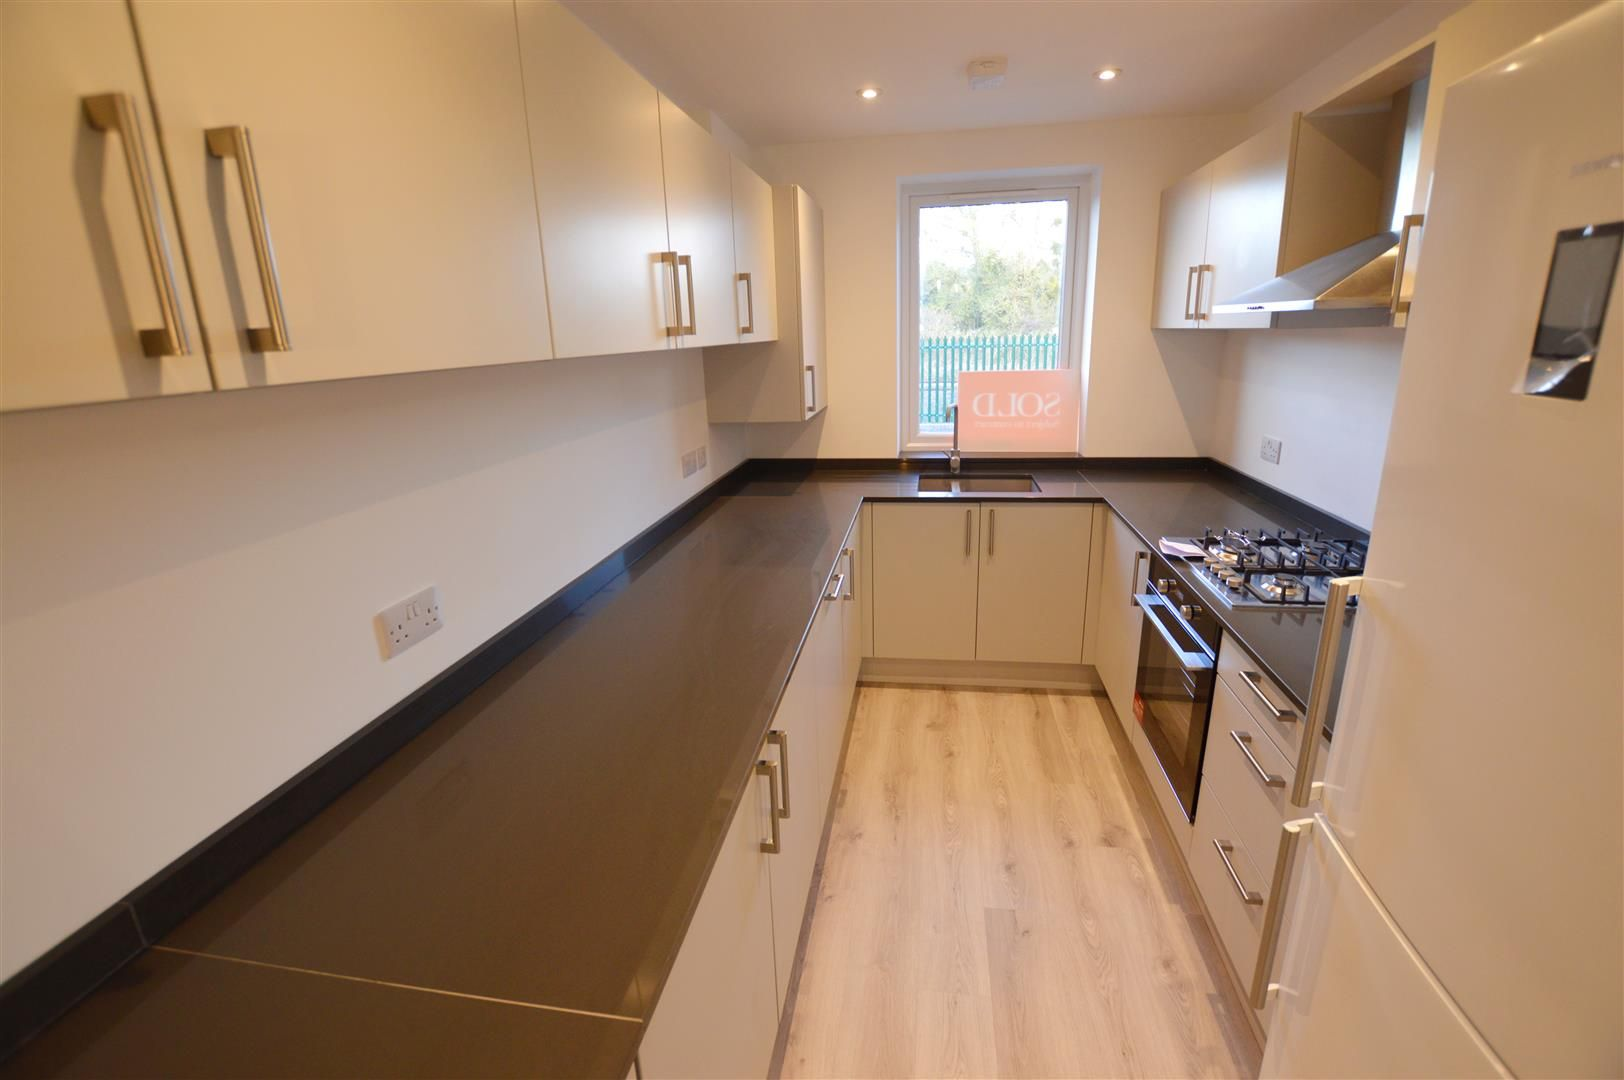 3 bed end of terrace for sale in Leominster  - Property Image 7